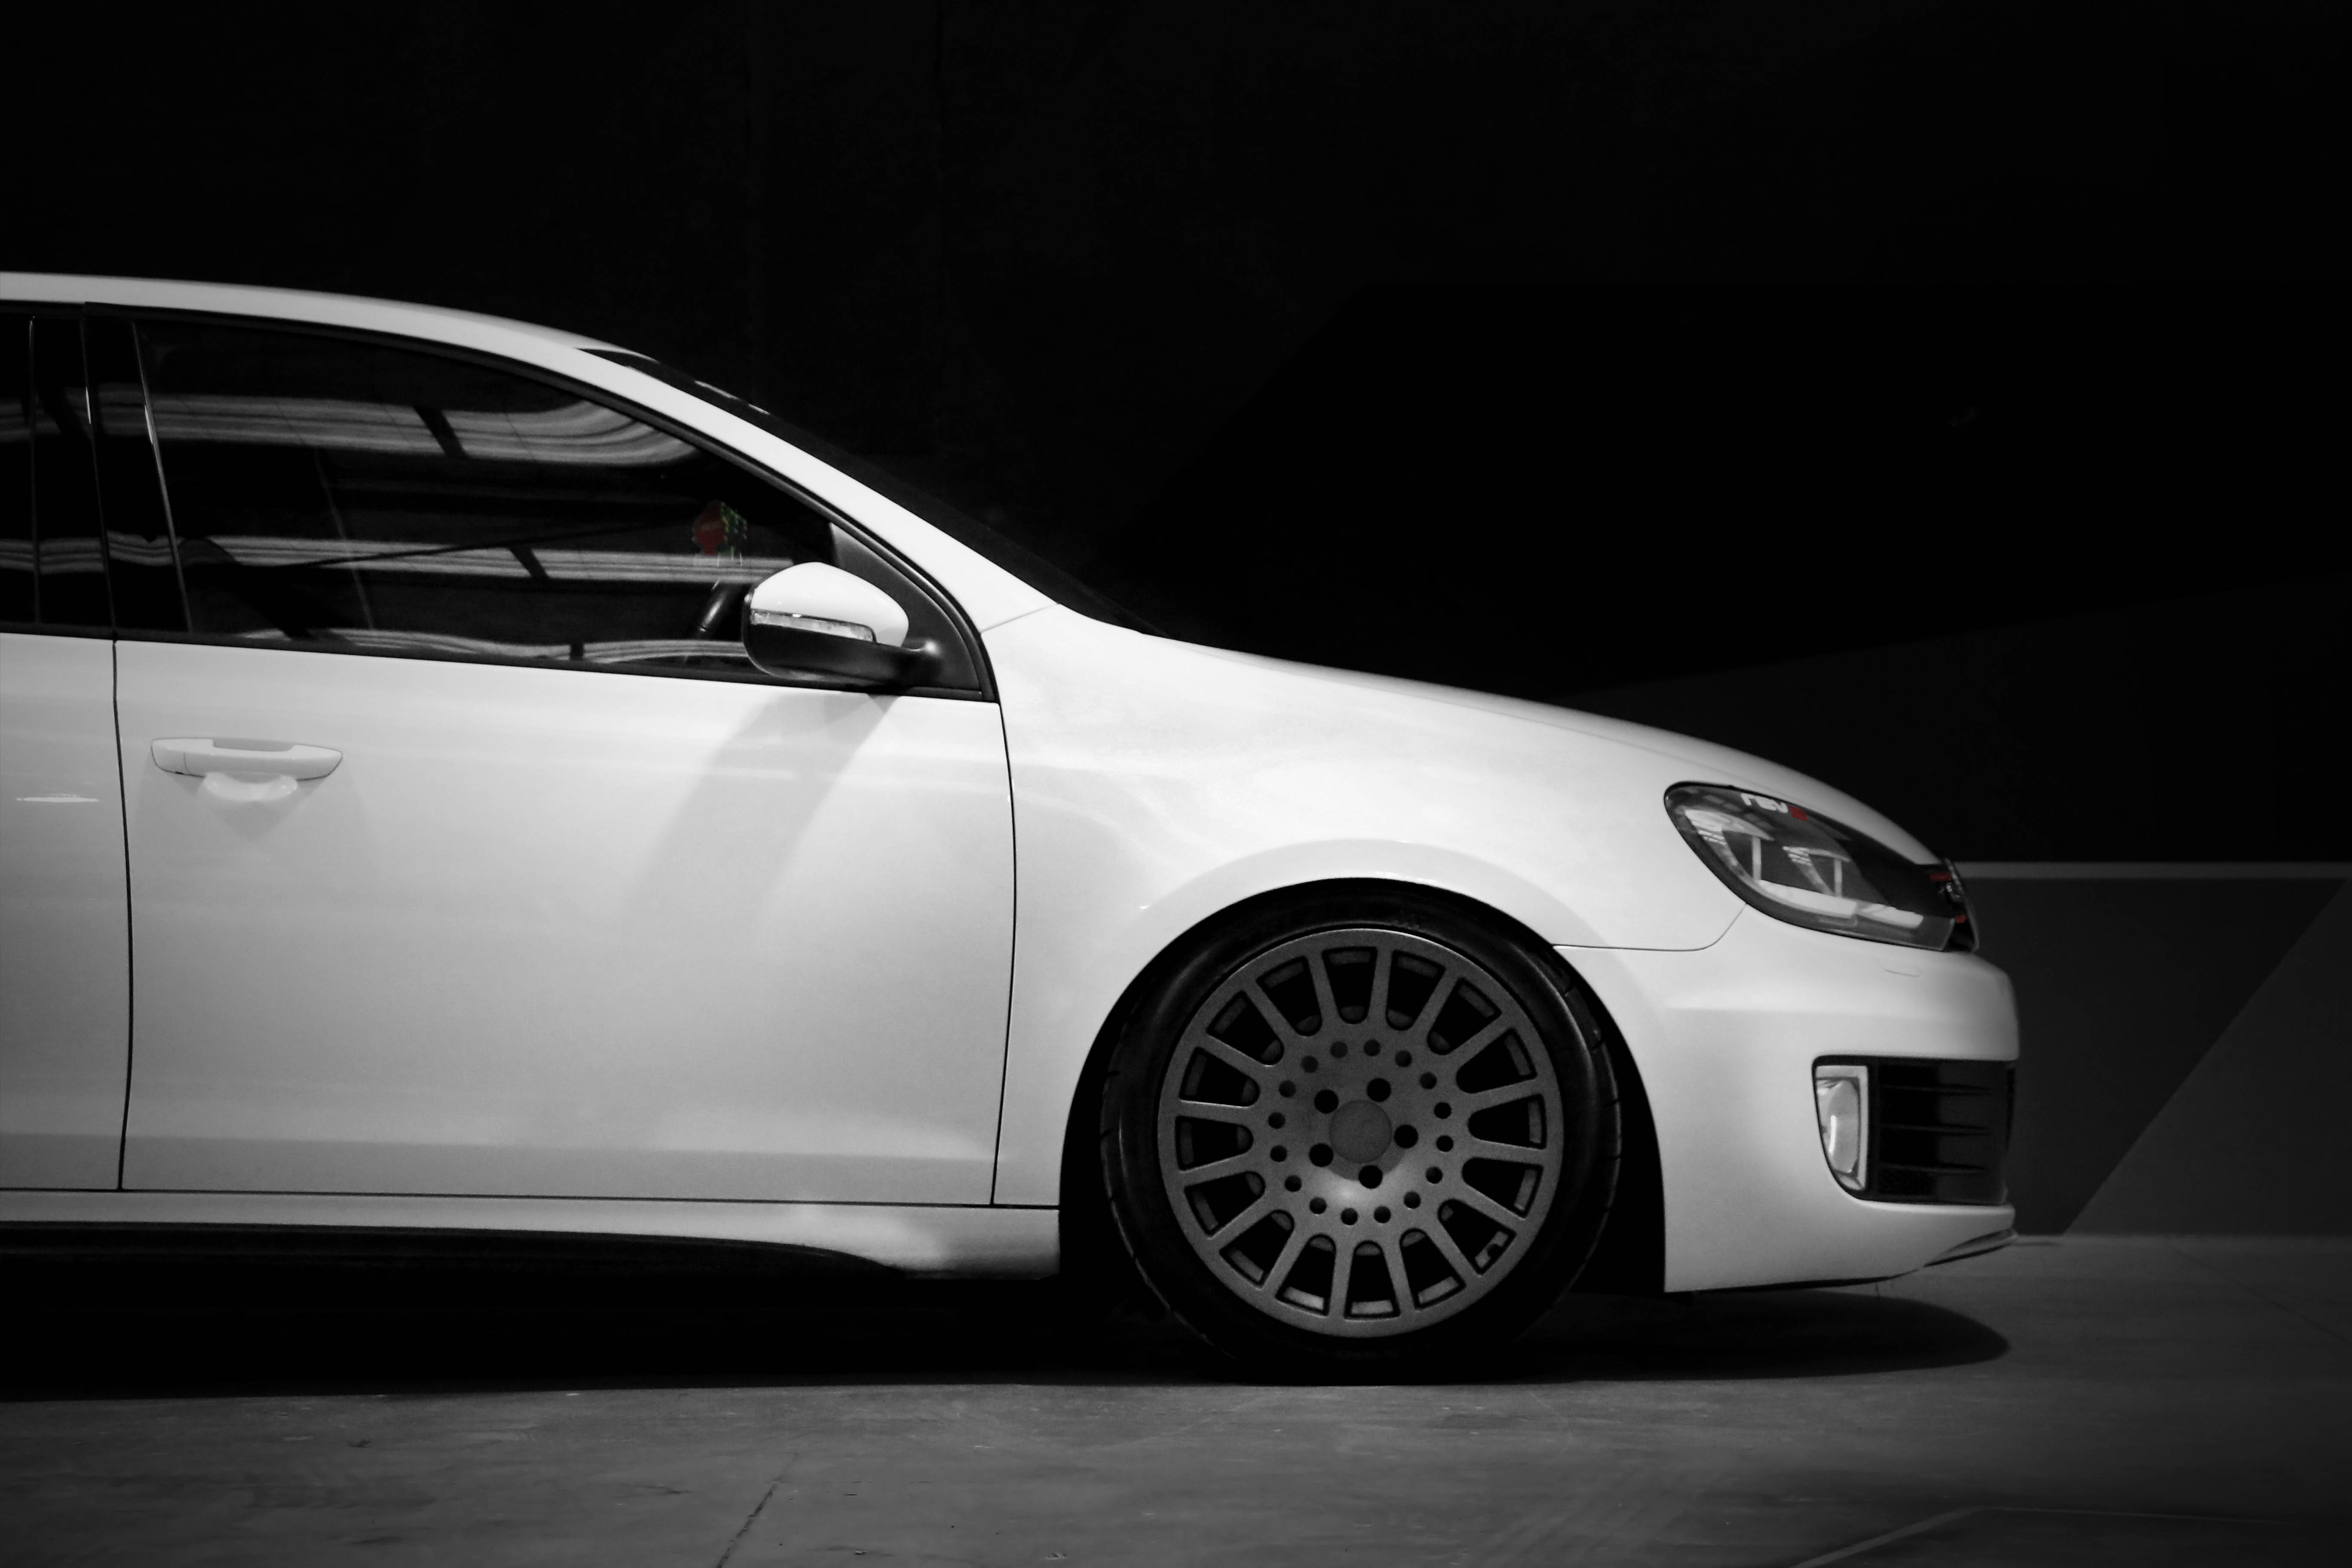 VW Mk6 GTI on TSW Holeshot rotary forged